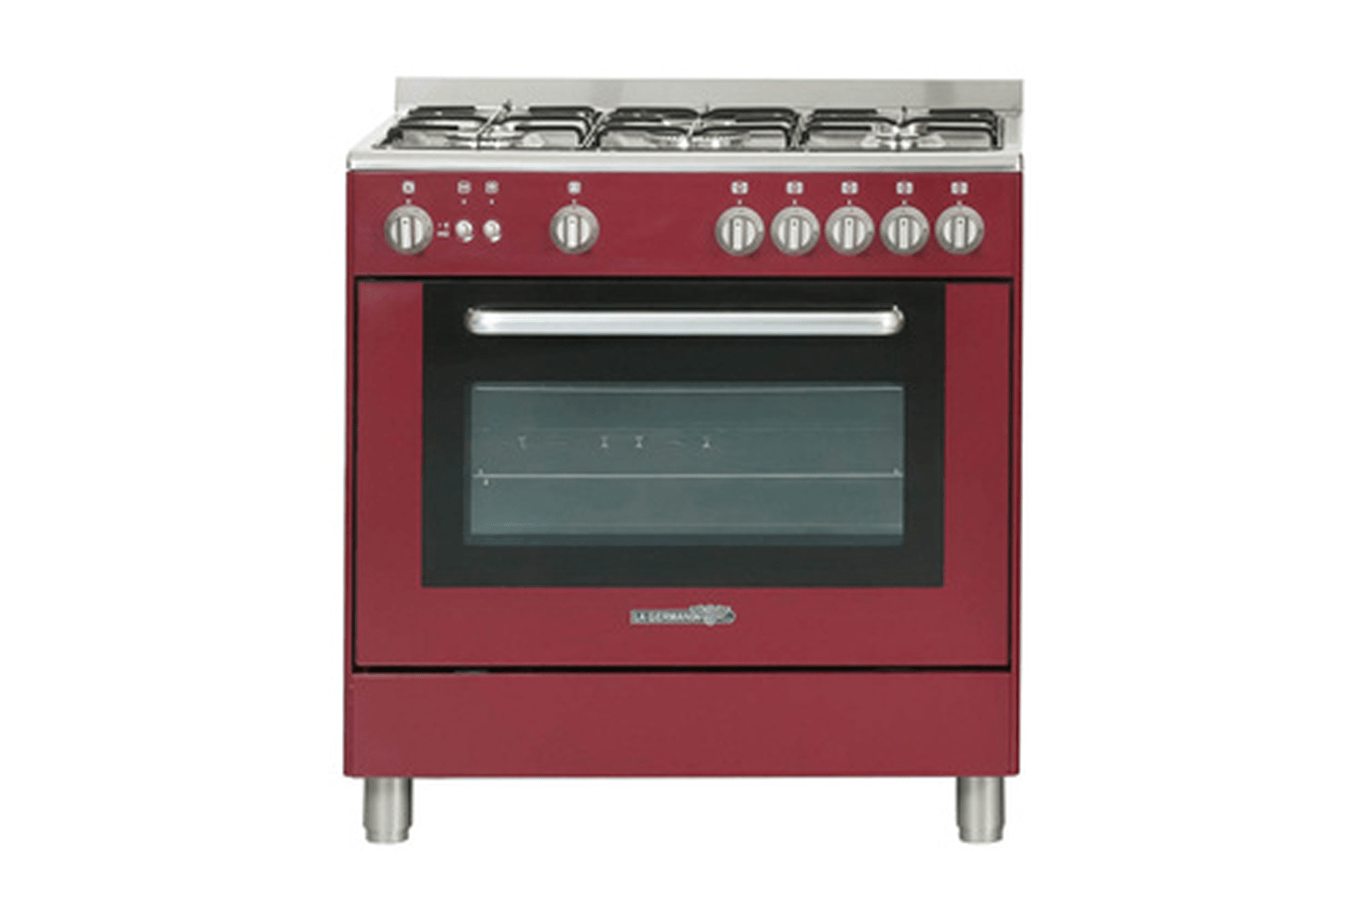 Darty Cuisine Plaisir Piano De Cuisson La Germania T85c20vidt Rouge 3557677